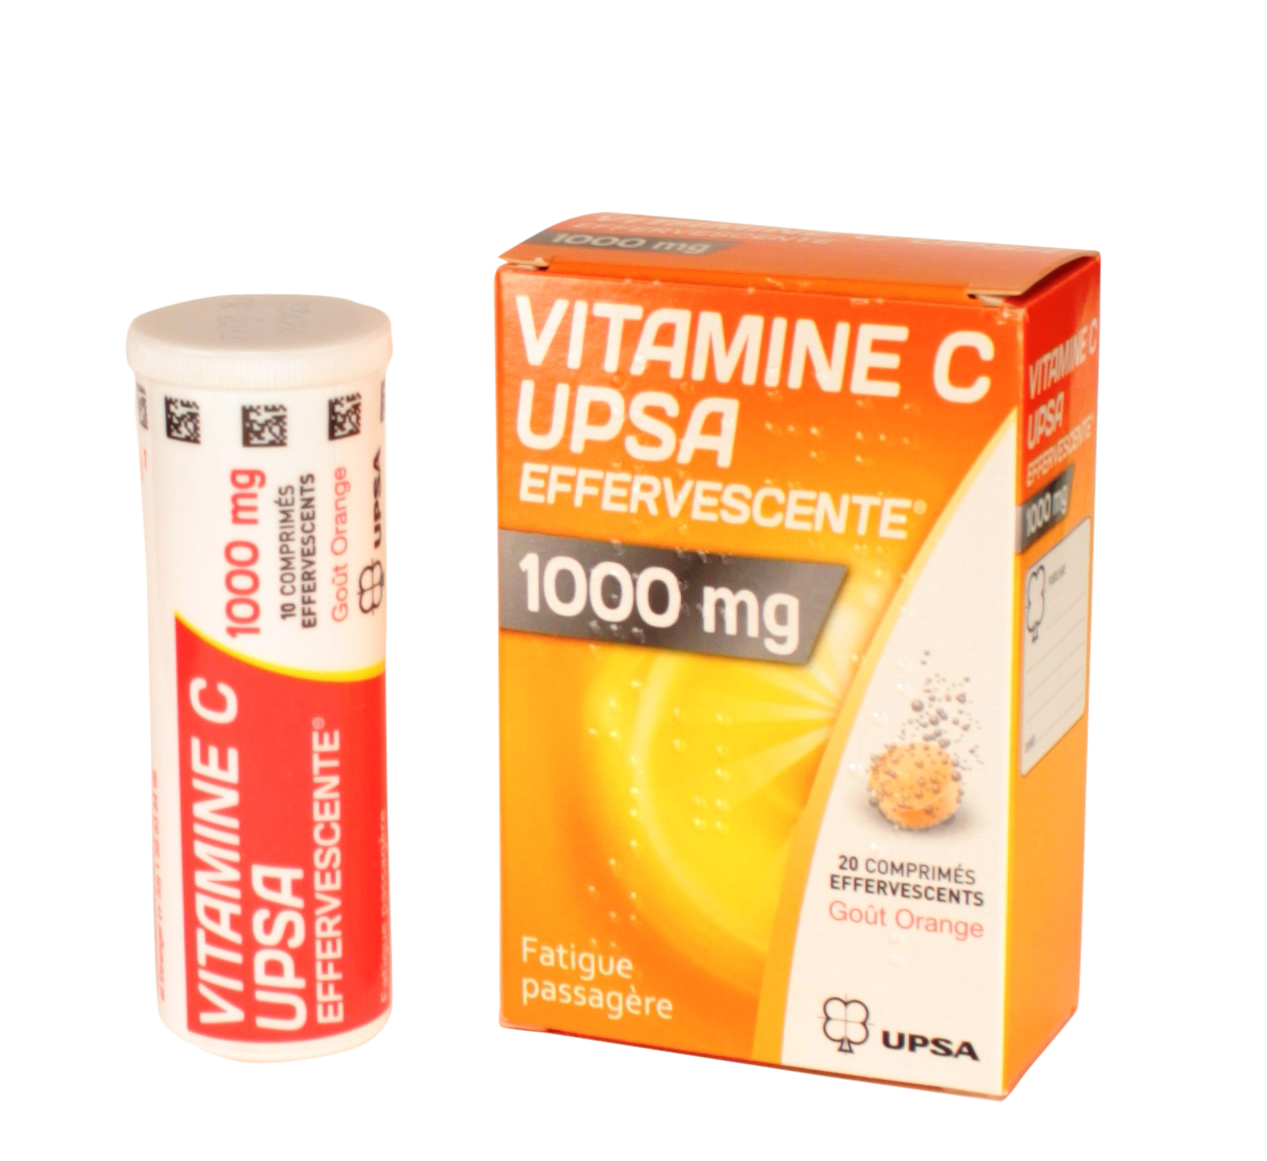 vitamine c naturelle en pharmacie